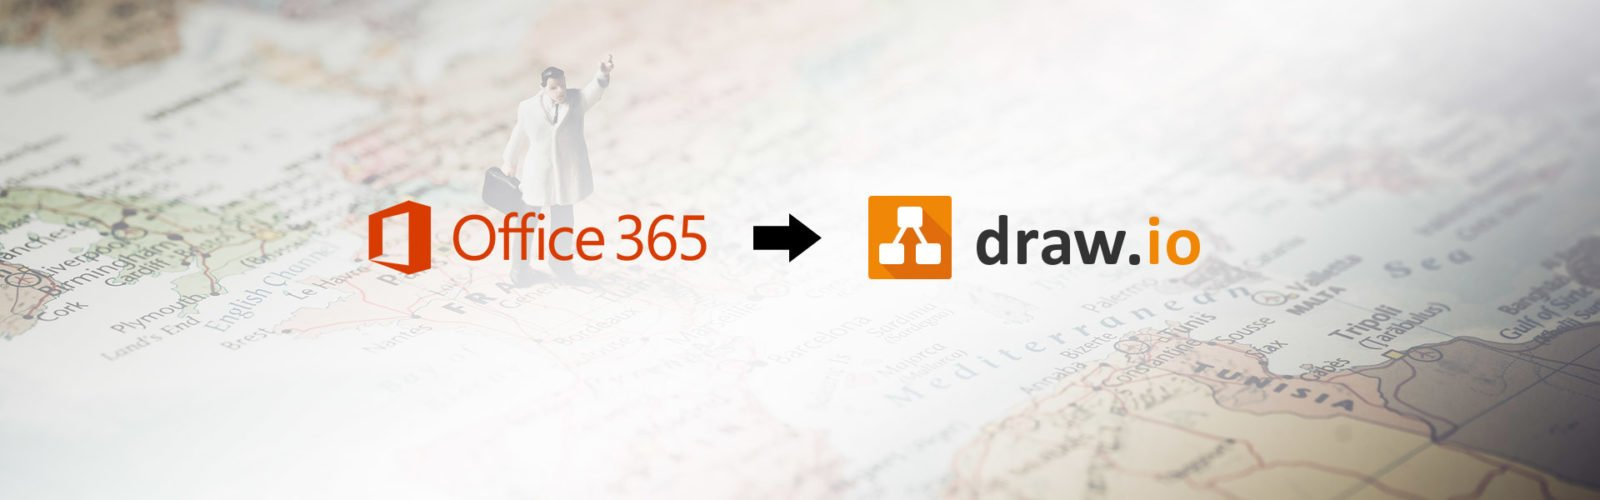 Office 365 - draw.io